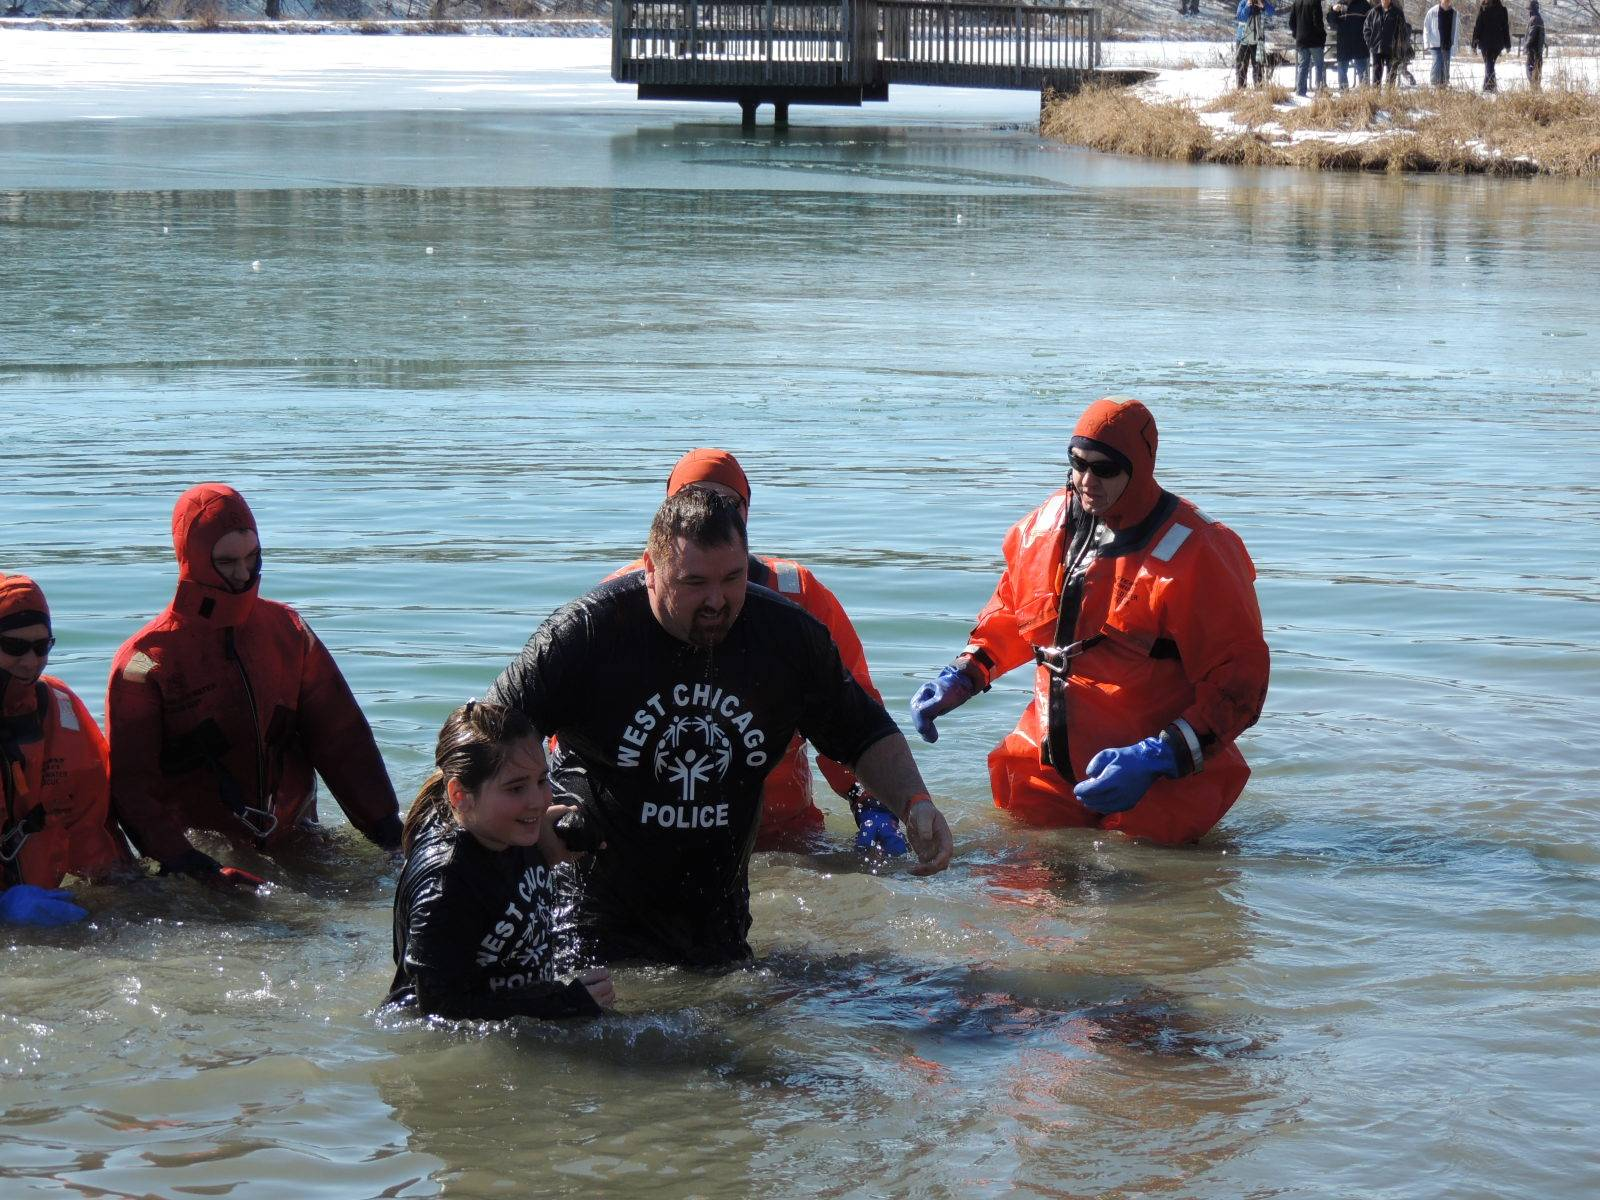 Exiting the cold water of Loon Lake in Silver Springs State Park, West Chicago Police Detective Robbi Peterson and his 9-year old daughter Taylor are all smiles as they complete the challenge of the Polar Plunge for Special Olympics Illinois and raise $600 to donate to the organization.